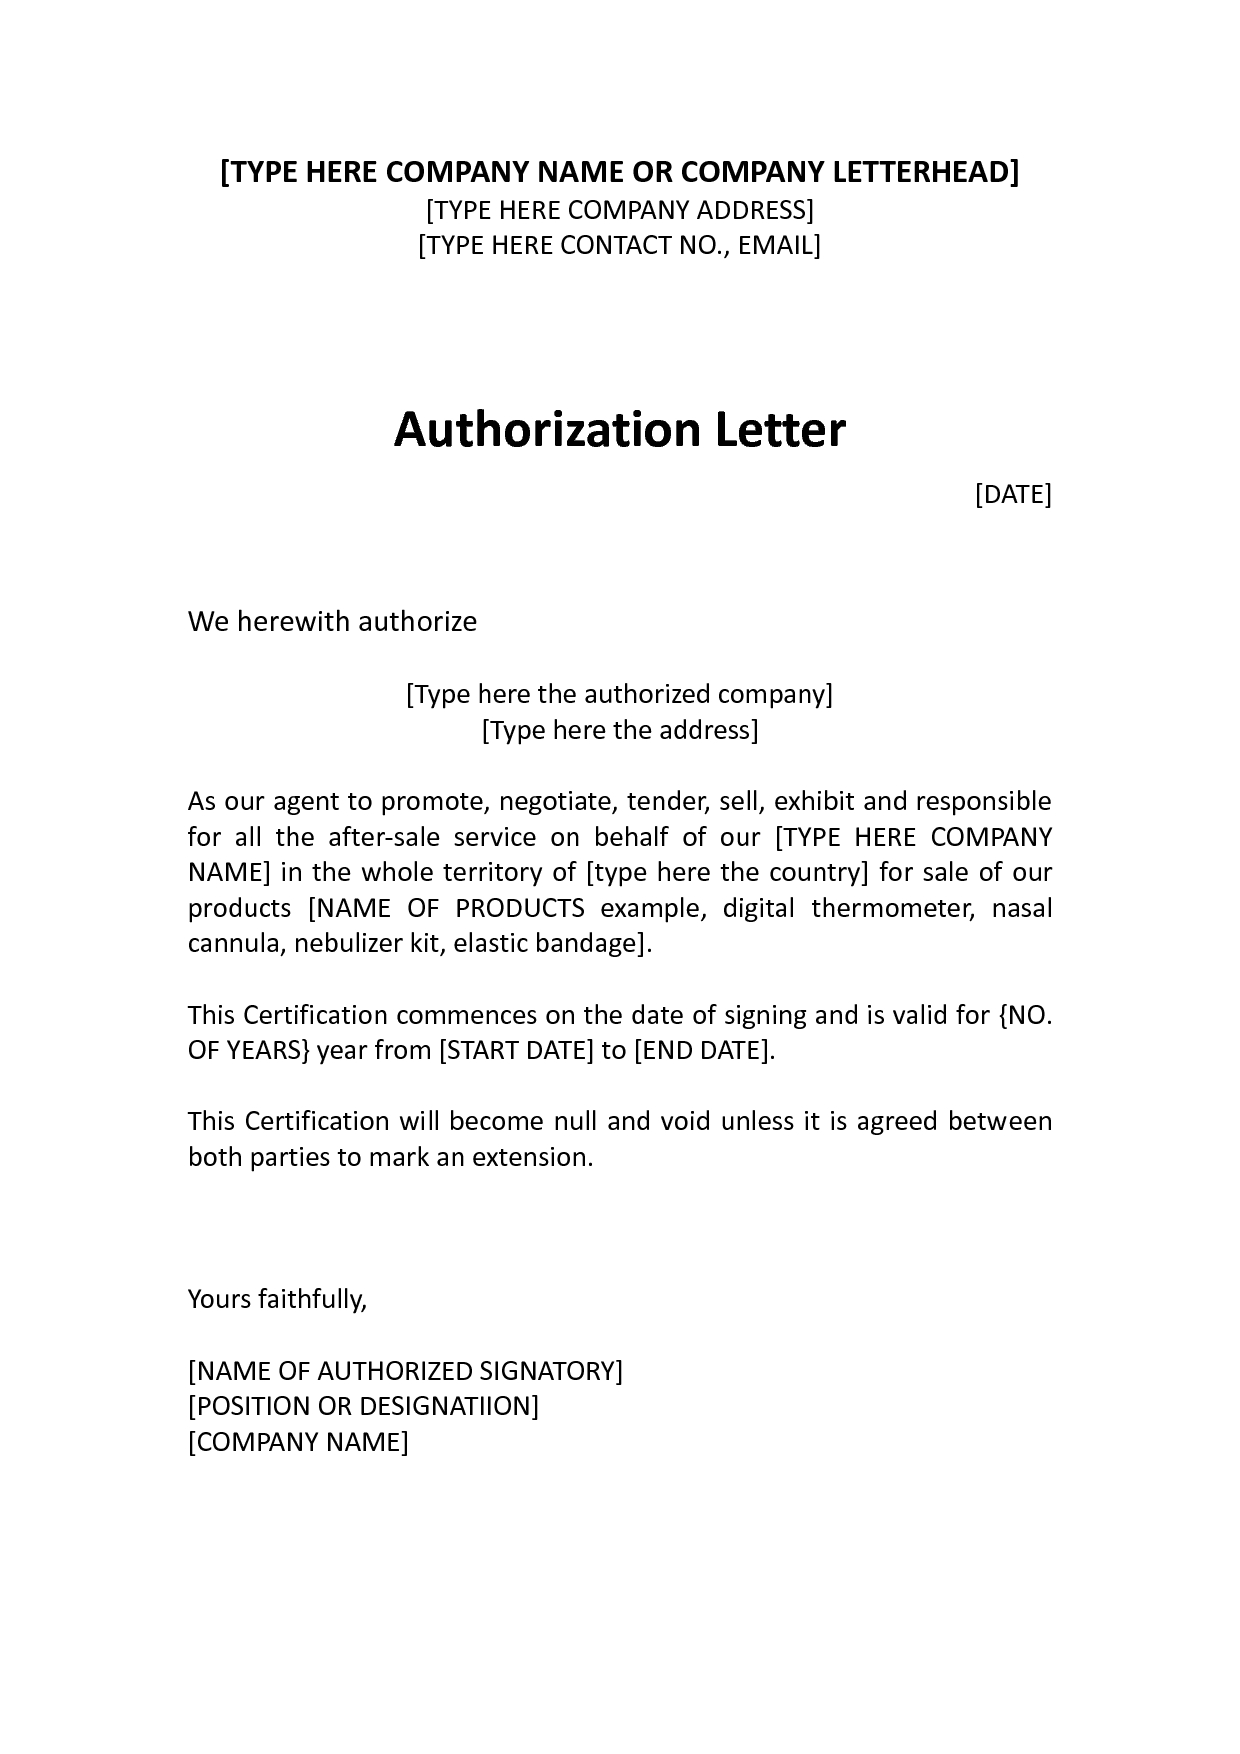 Proof Of Loss Of Coverage Letter Template - Authorization Distributor Letter Sample Distributor Dealer